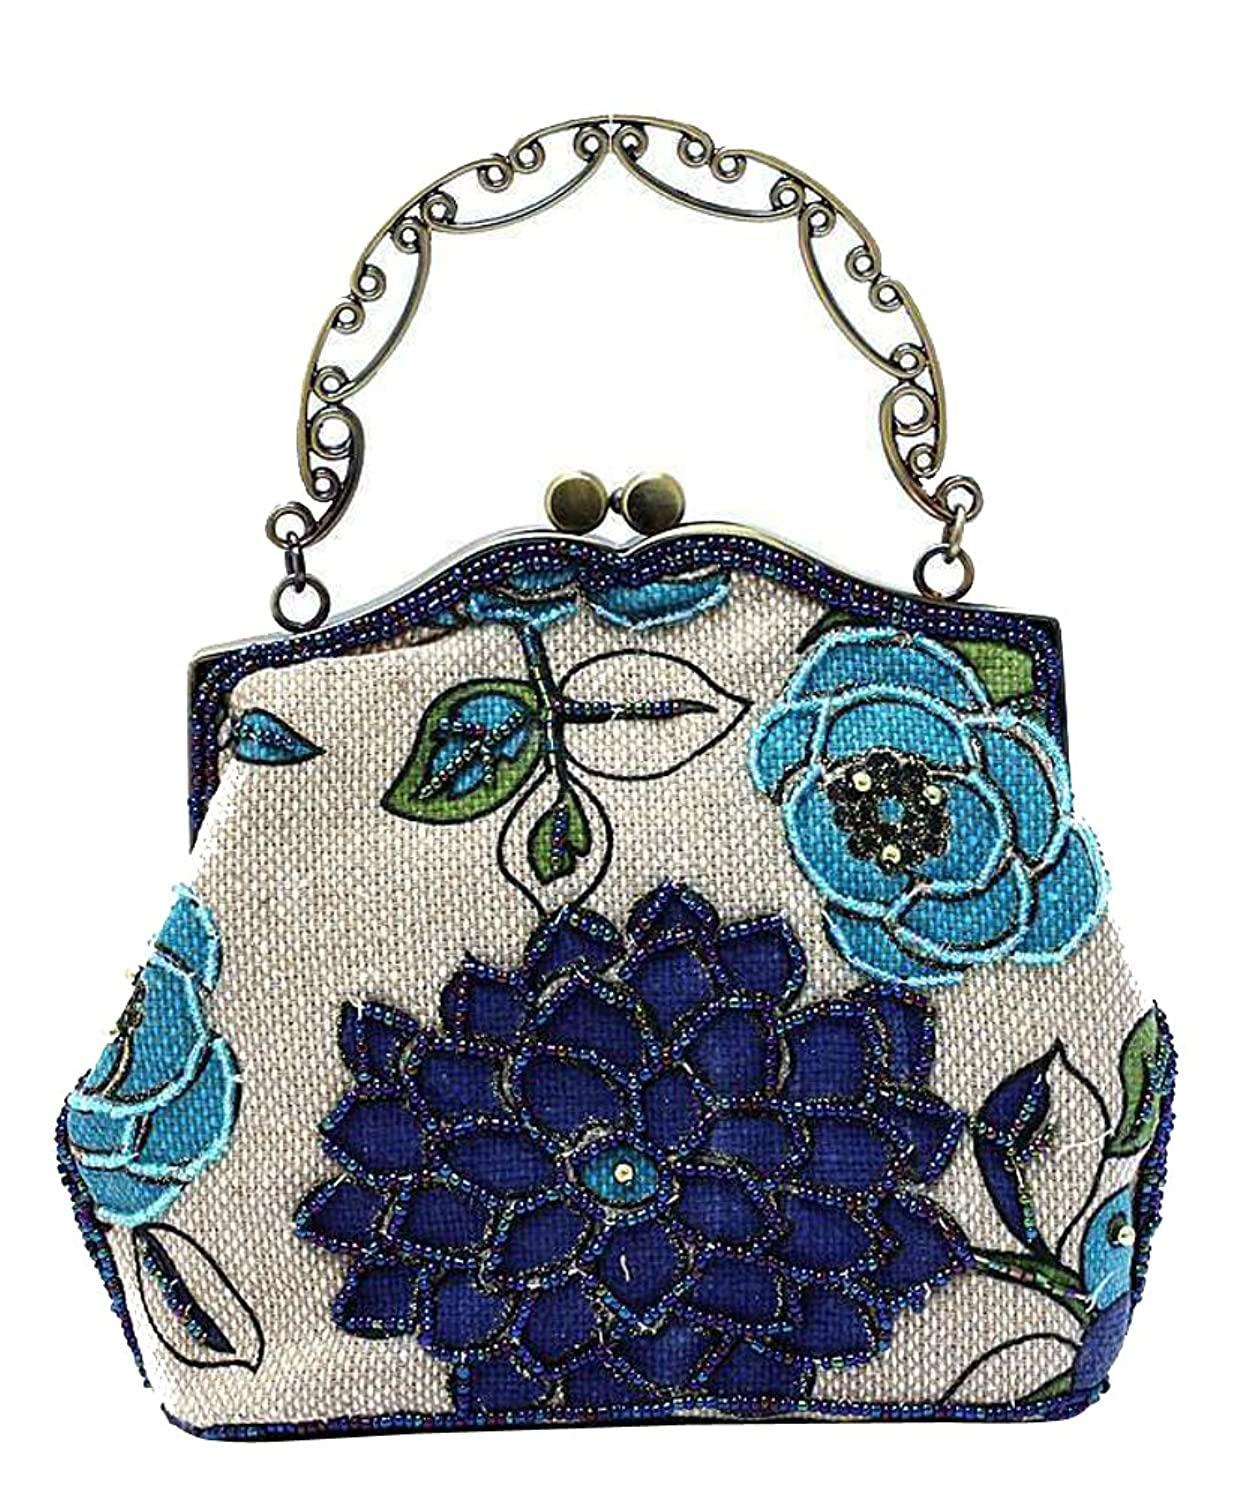 Vintage & Retro Handbags, Purses, Wallets, Bags ILISHOP Womens Vintage Luxury Printing Beaded Women Handbag Evening Bag $19.99 AT vintagedancer.com